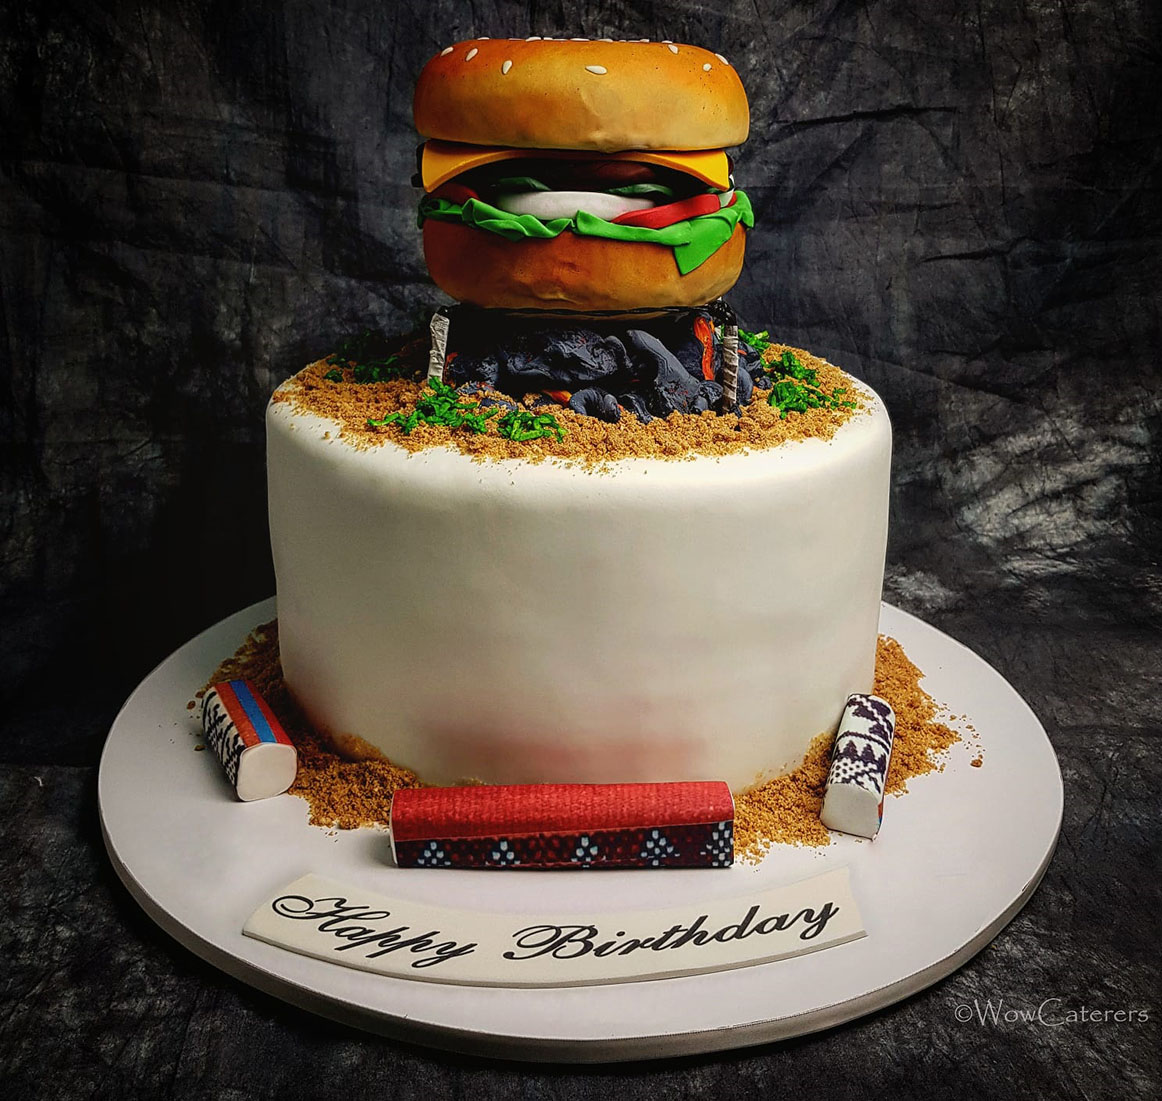 Burger Theme Cake Wow Caterers